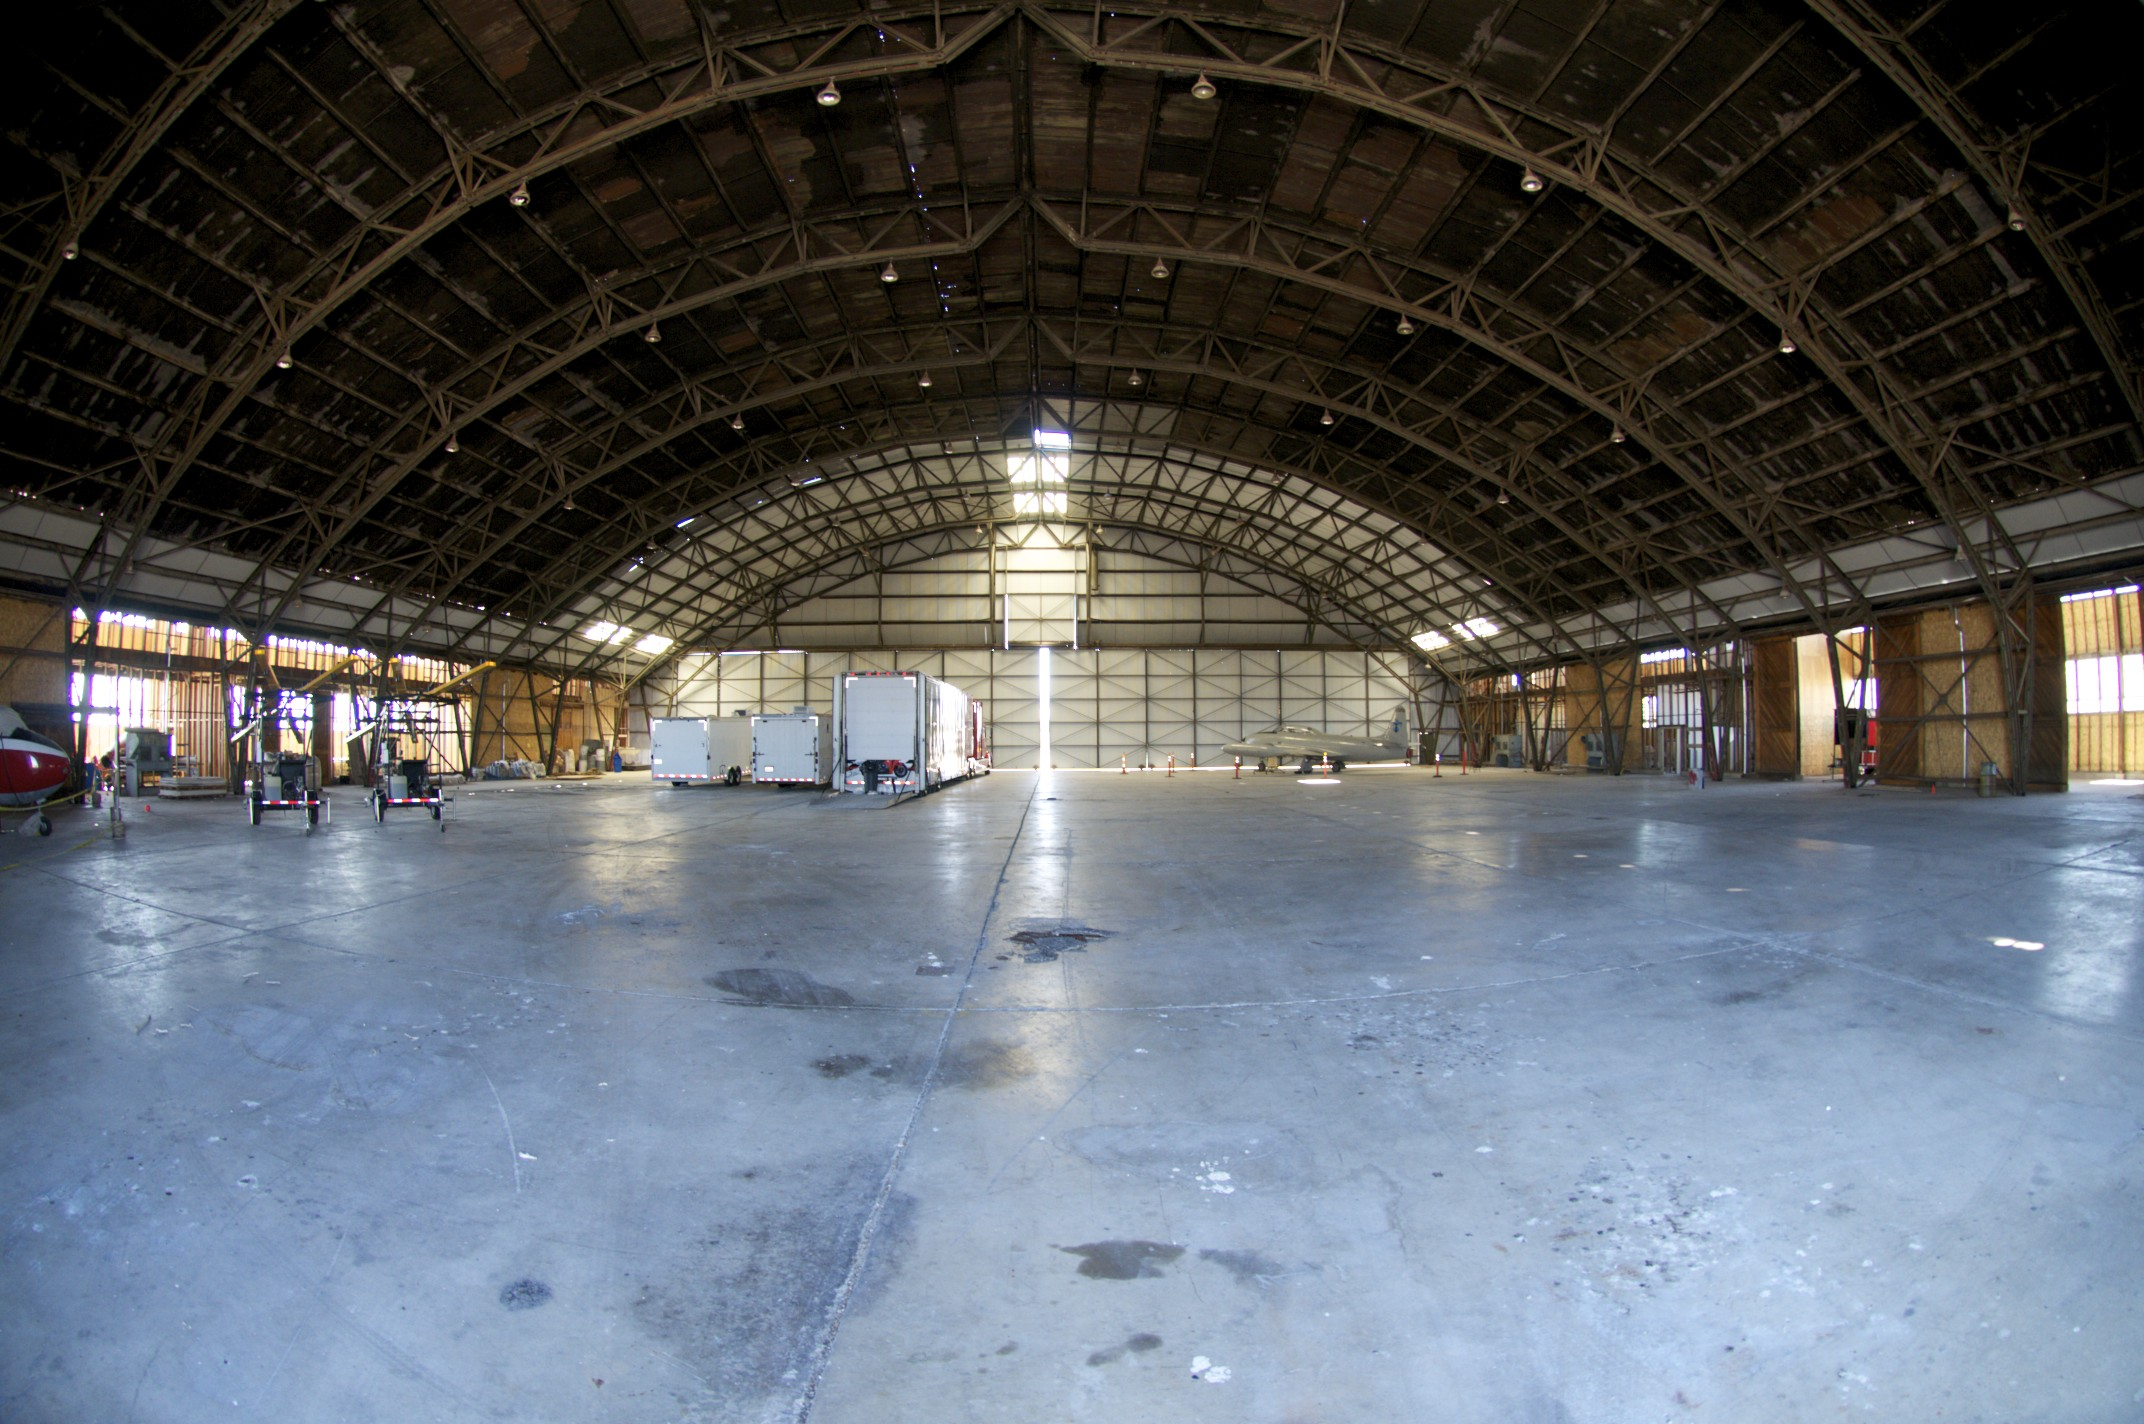 Inside the Enola Gay hanger, Wendover, Utah.